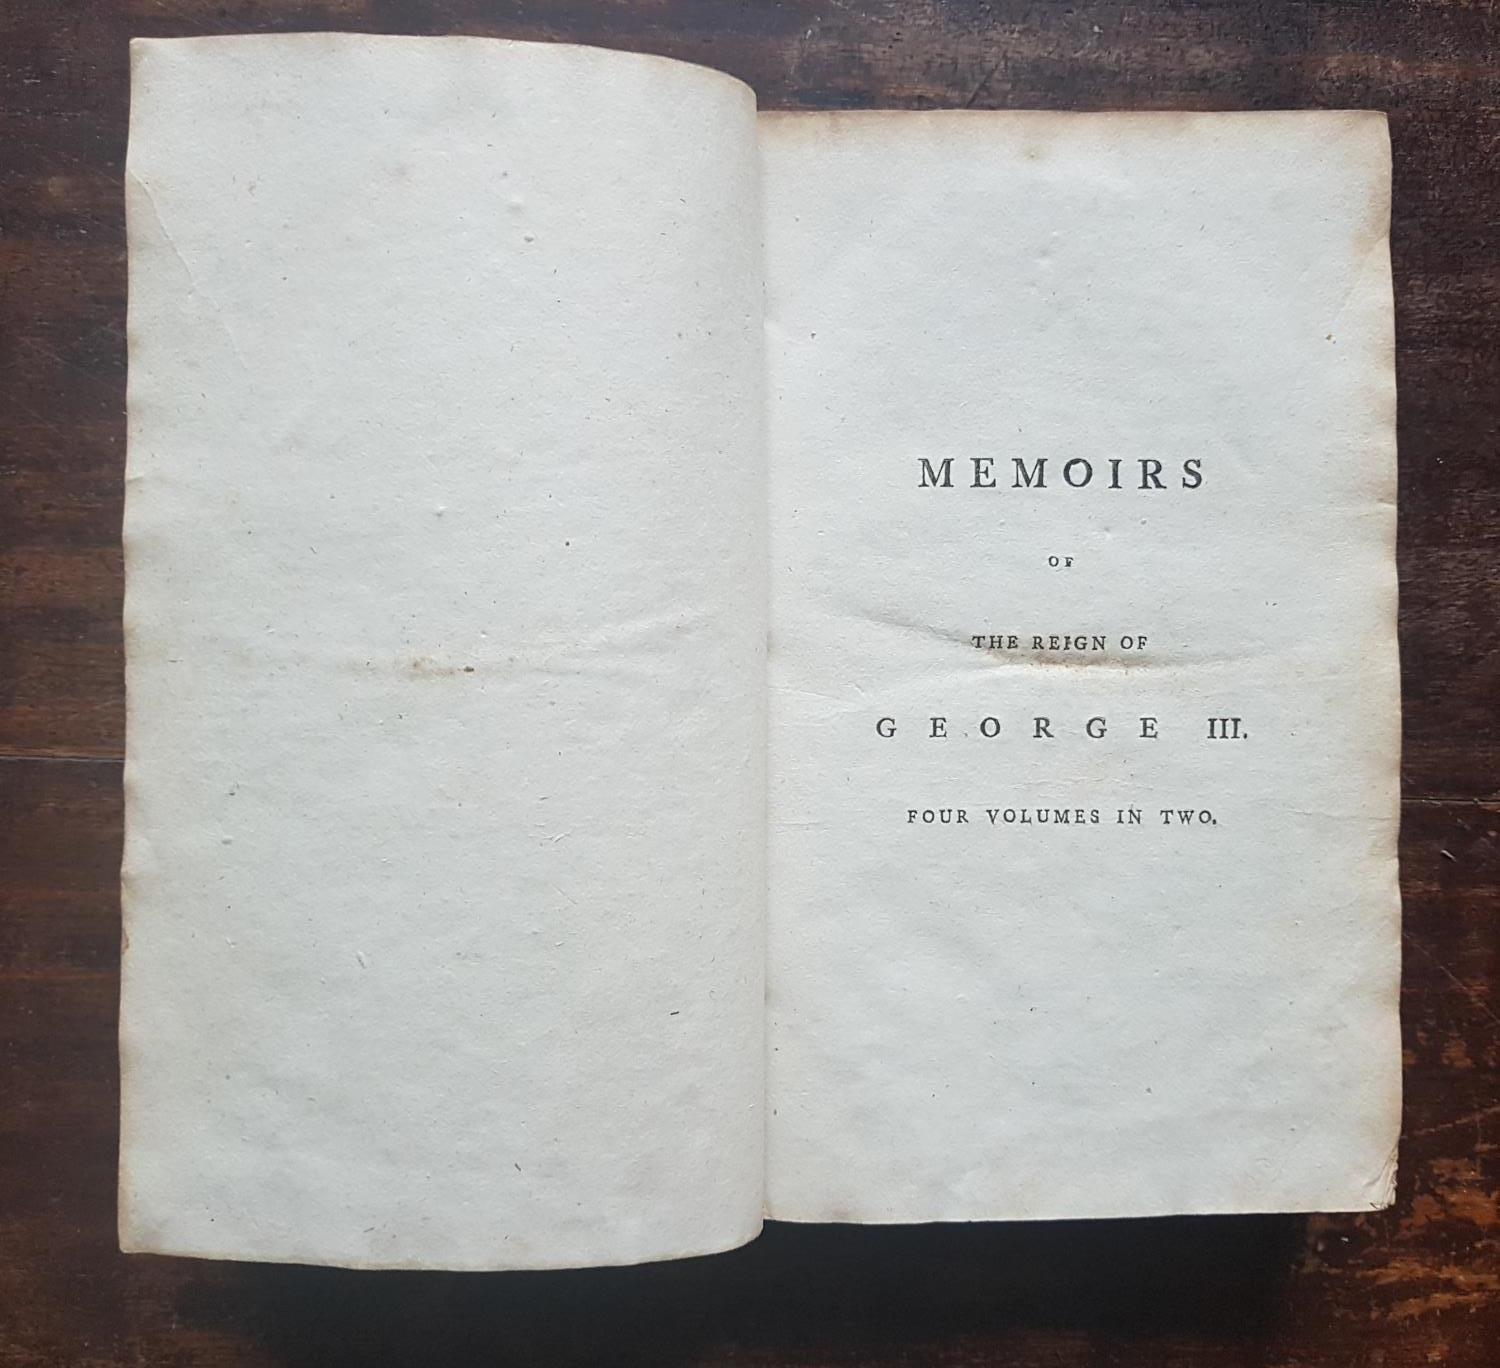 Lot 359 - Memories of the reign of George Third. The sessions of Parliament ending AD 1796 volume 1.